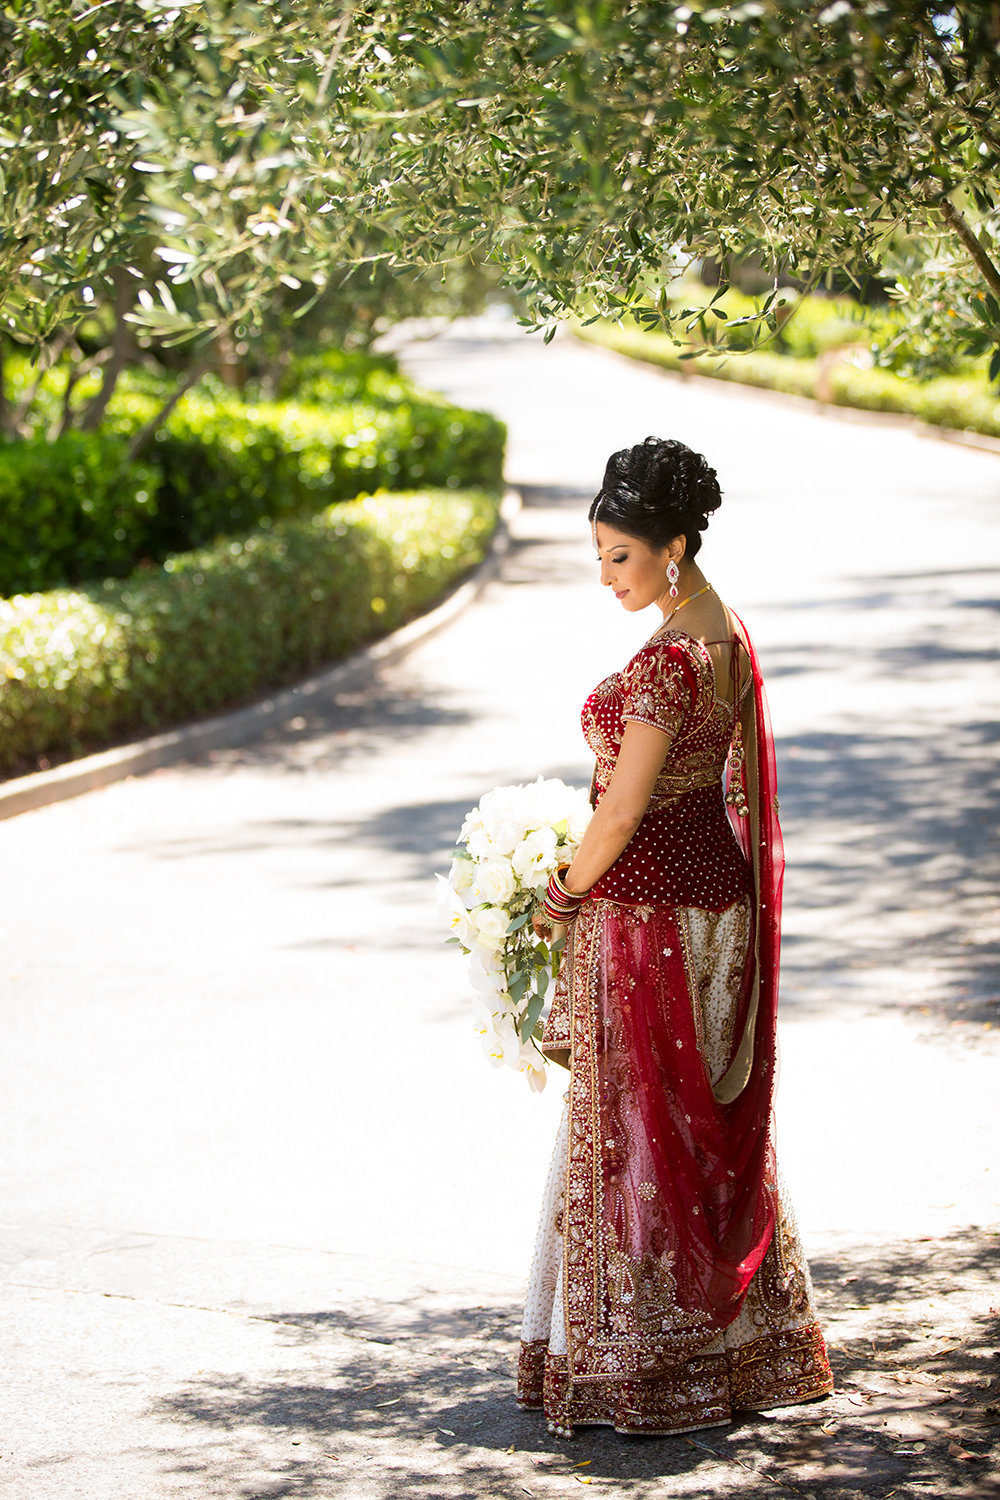 Peaceful moment with bride in beautiful red sari